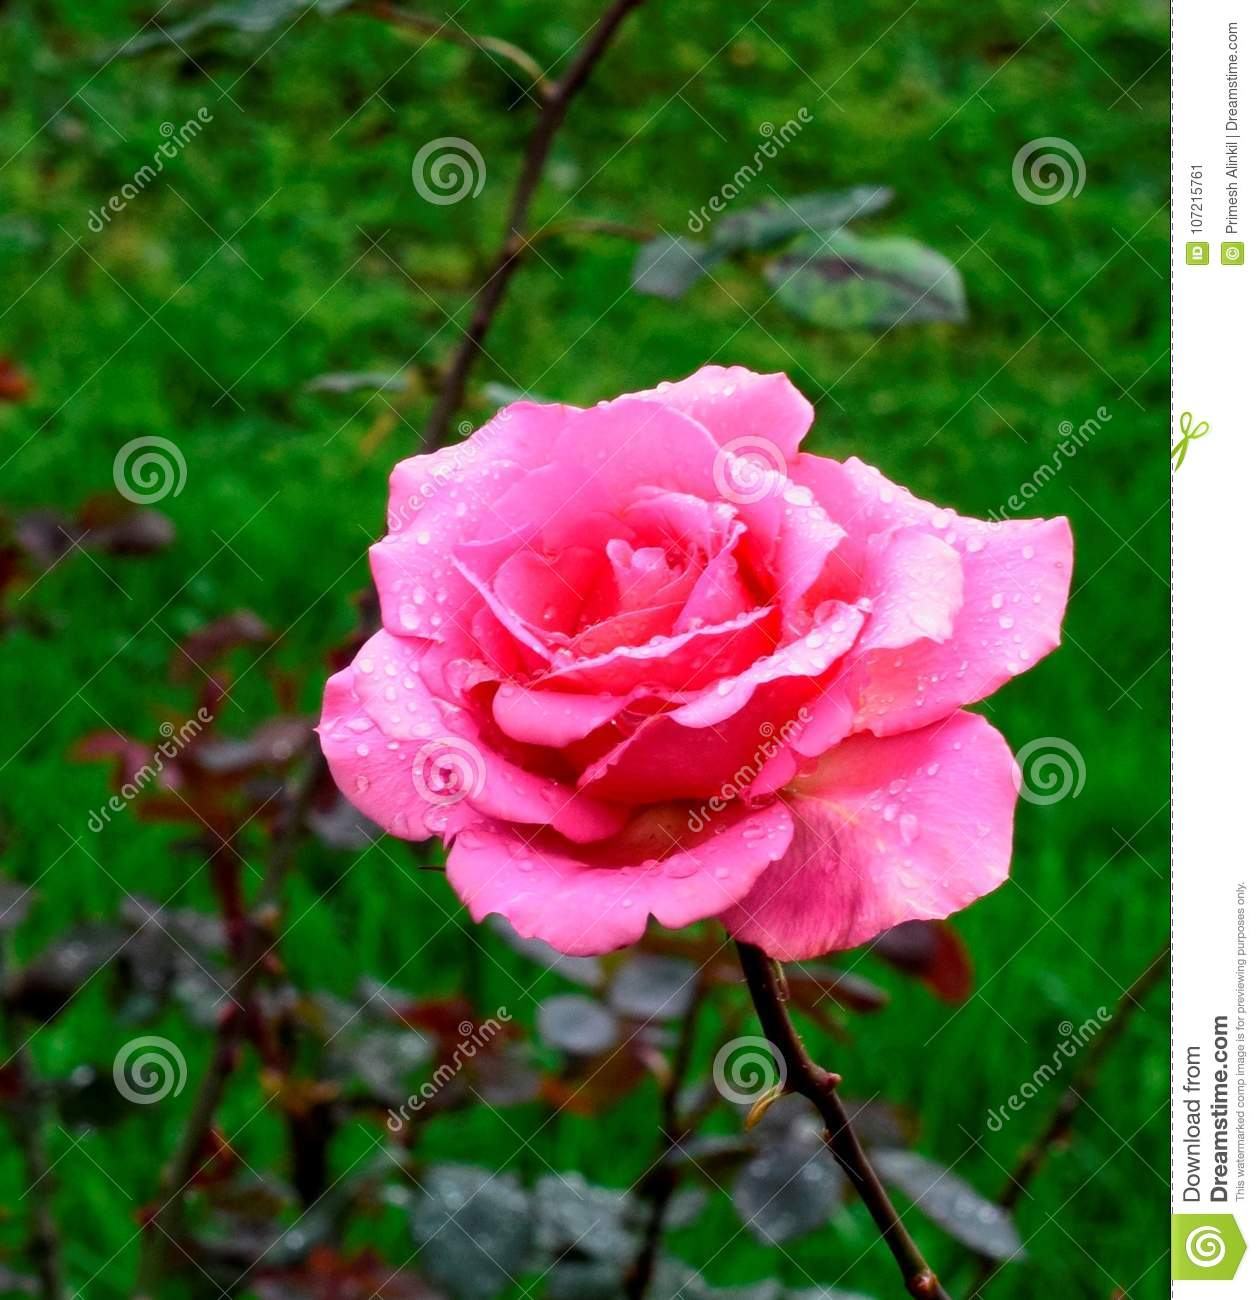 Beautiful Rose Flower In A Rose Gardenooty Stock Image Image Of